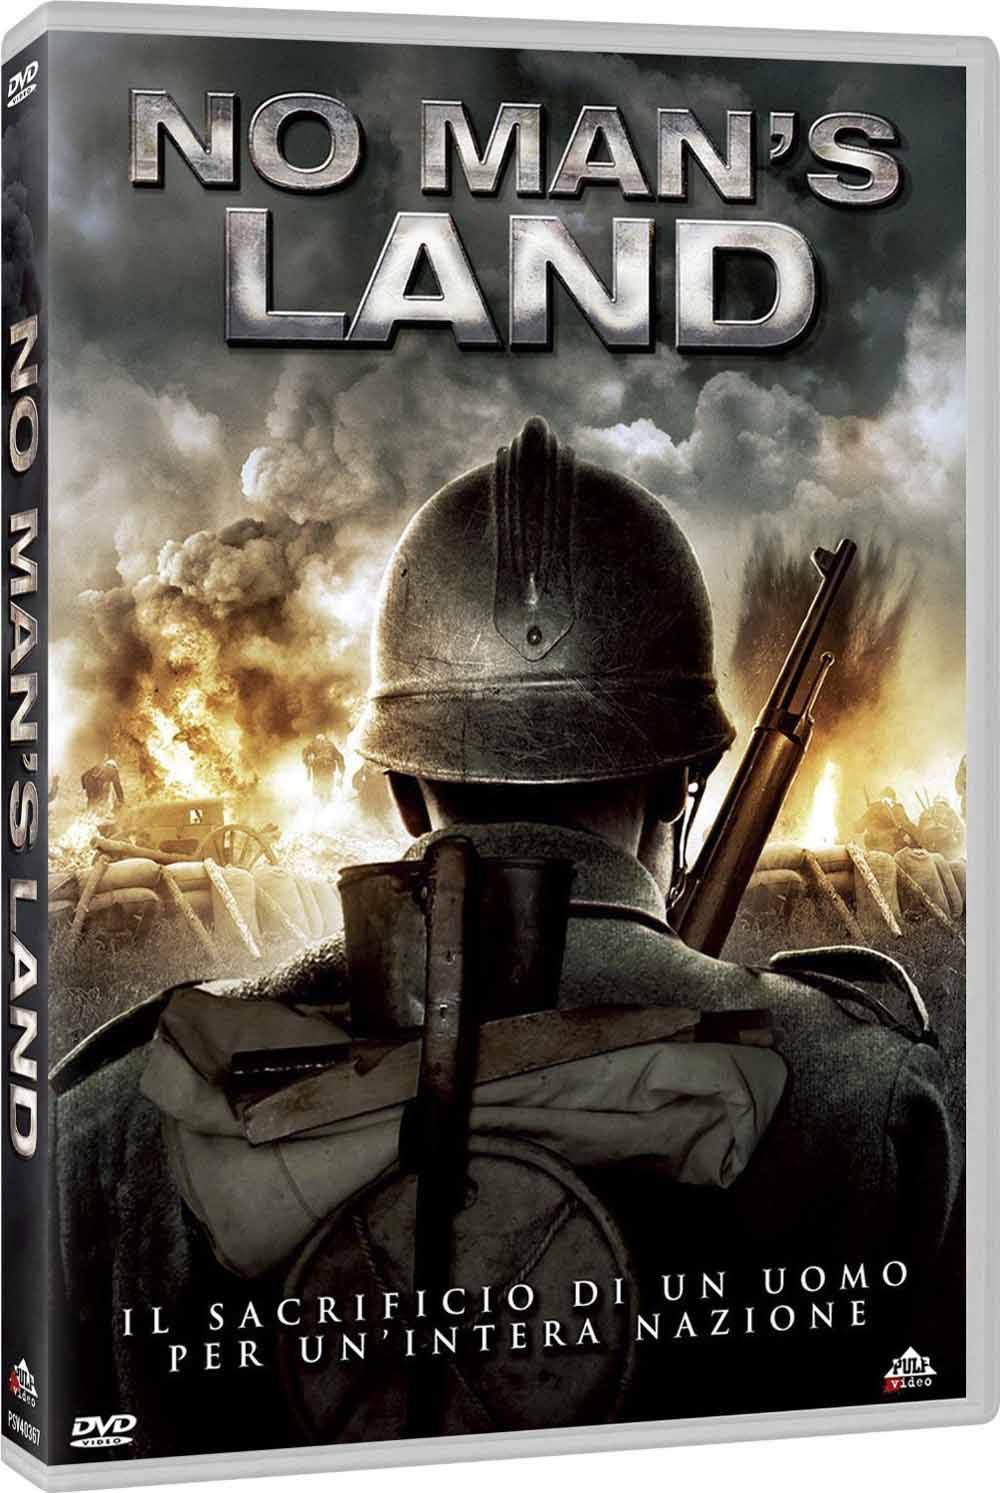 NO MAN'S LAND (DVD)